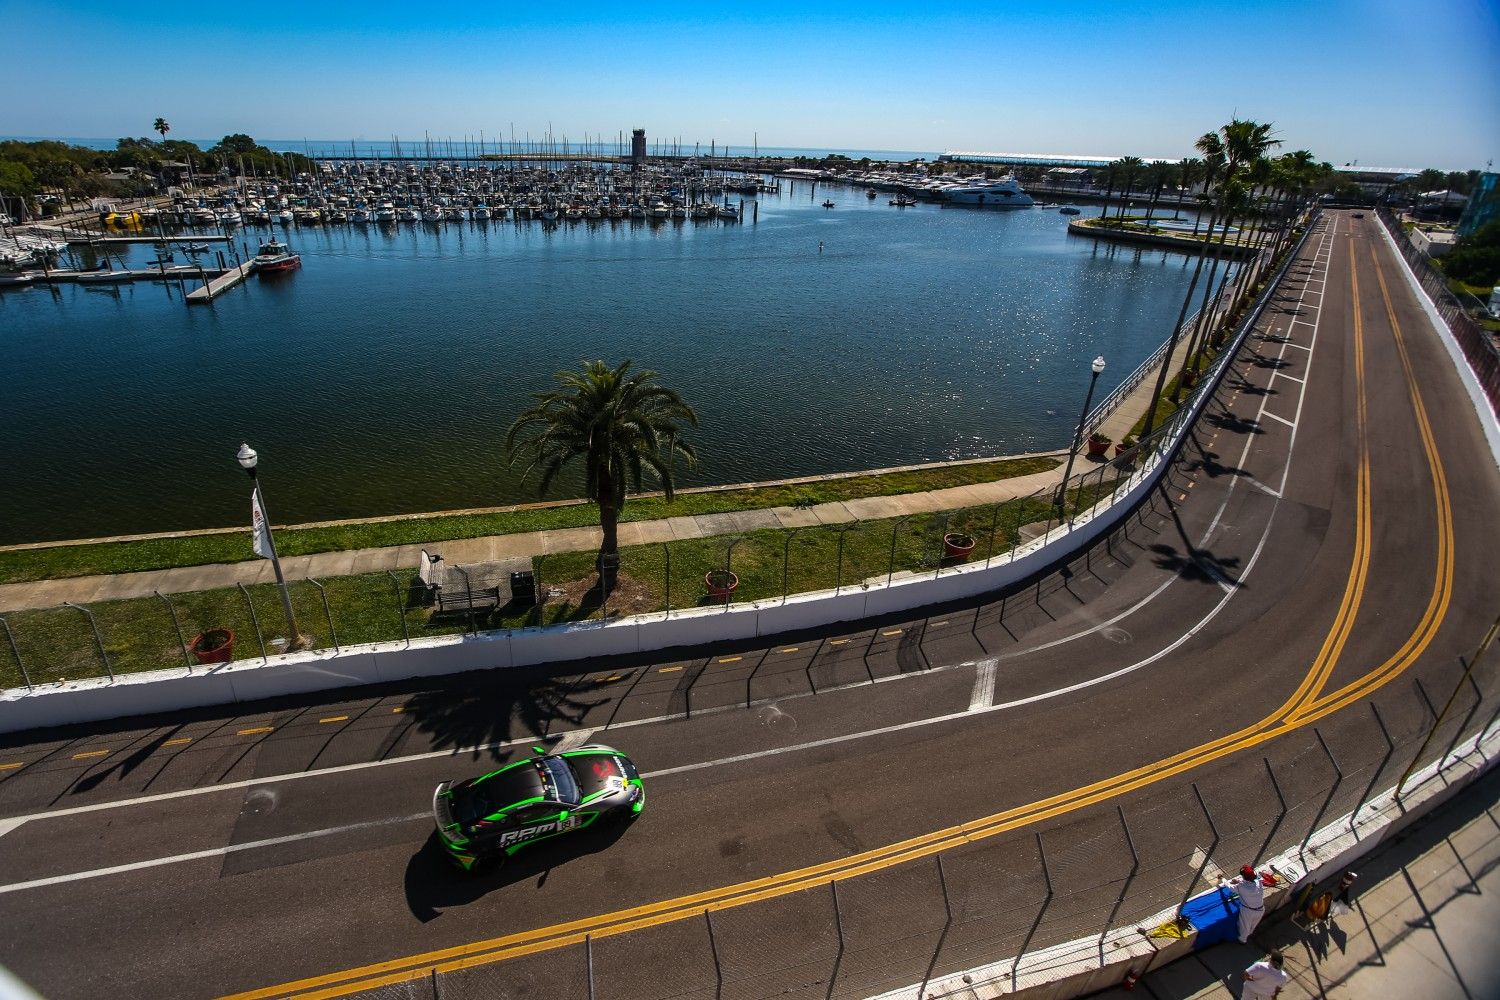 #89 GT4 Sprint, Am, RecStuff Racing, Fred Roberts, Aston Martin, Vantage GT4 SRO Motorsports Group America, St. Pete Grand Prix, St. Petersburg, FL, March 2020  | AL Arena/SRO